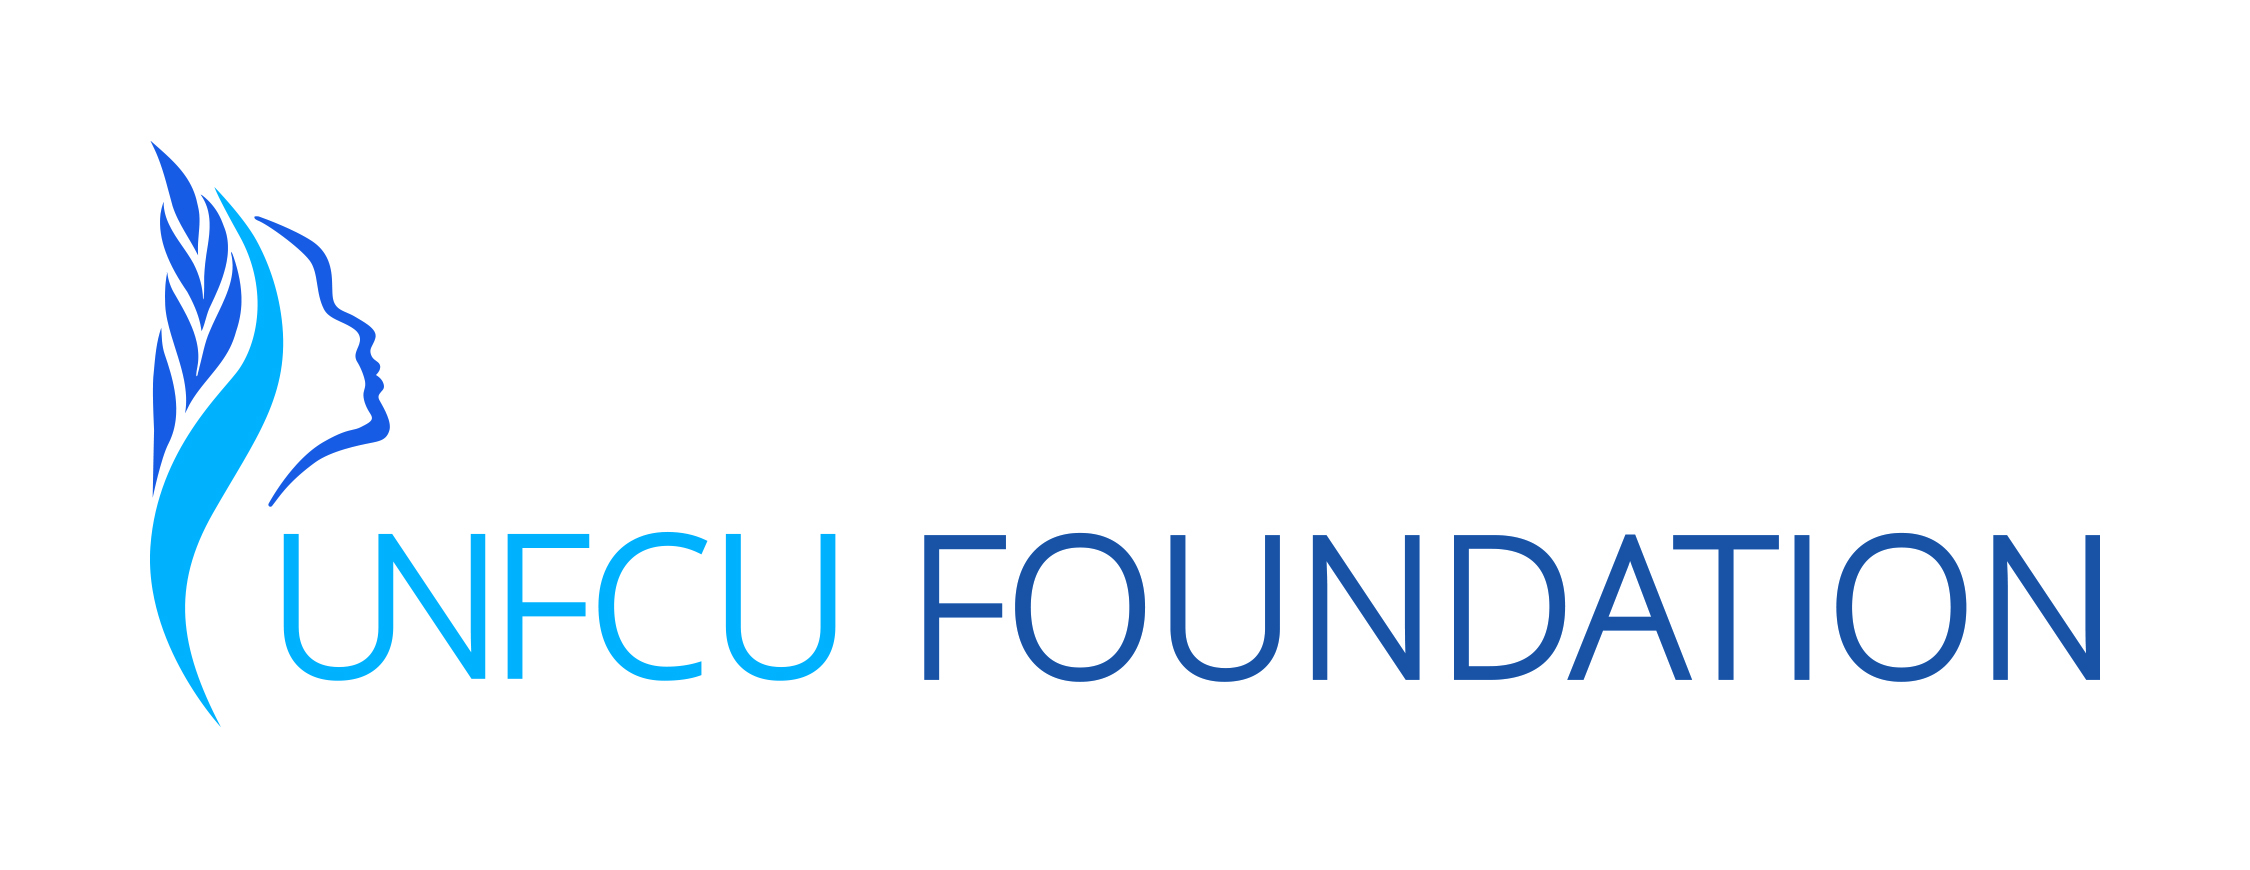 UNFCU Foundation - Corporate Social Responsibility News, Reports ...